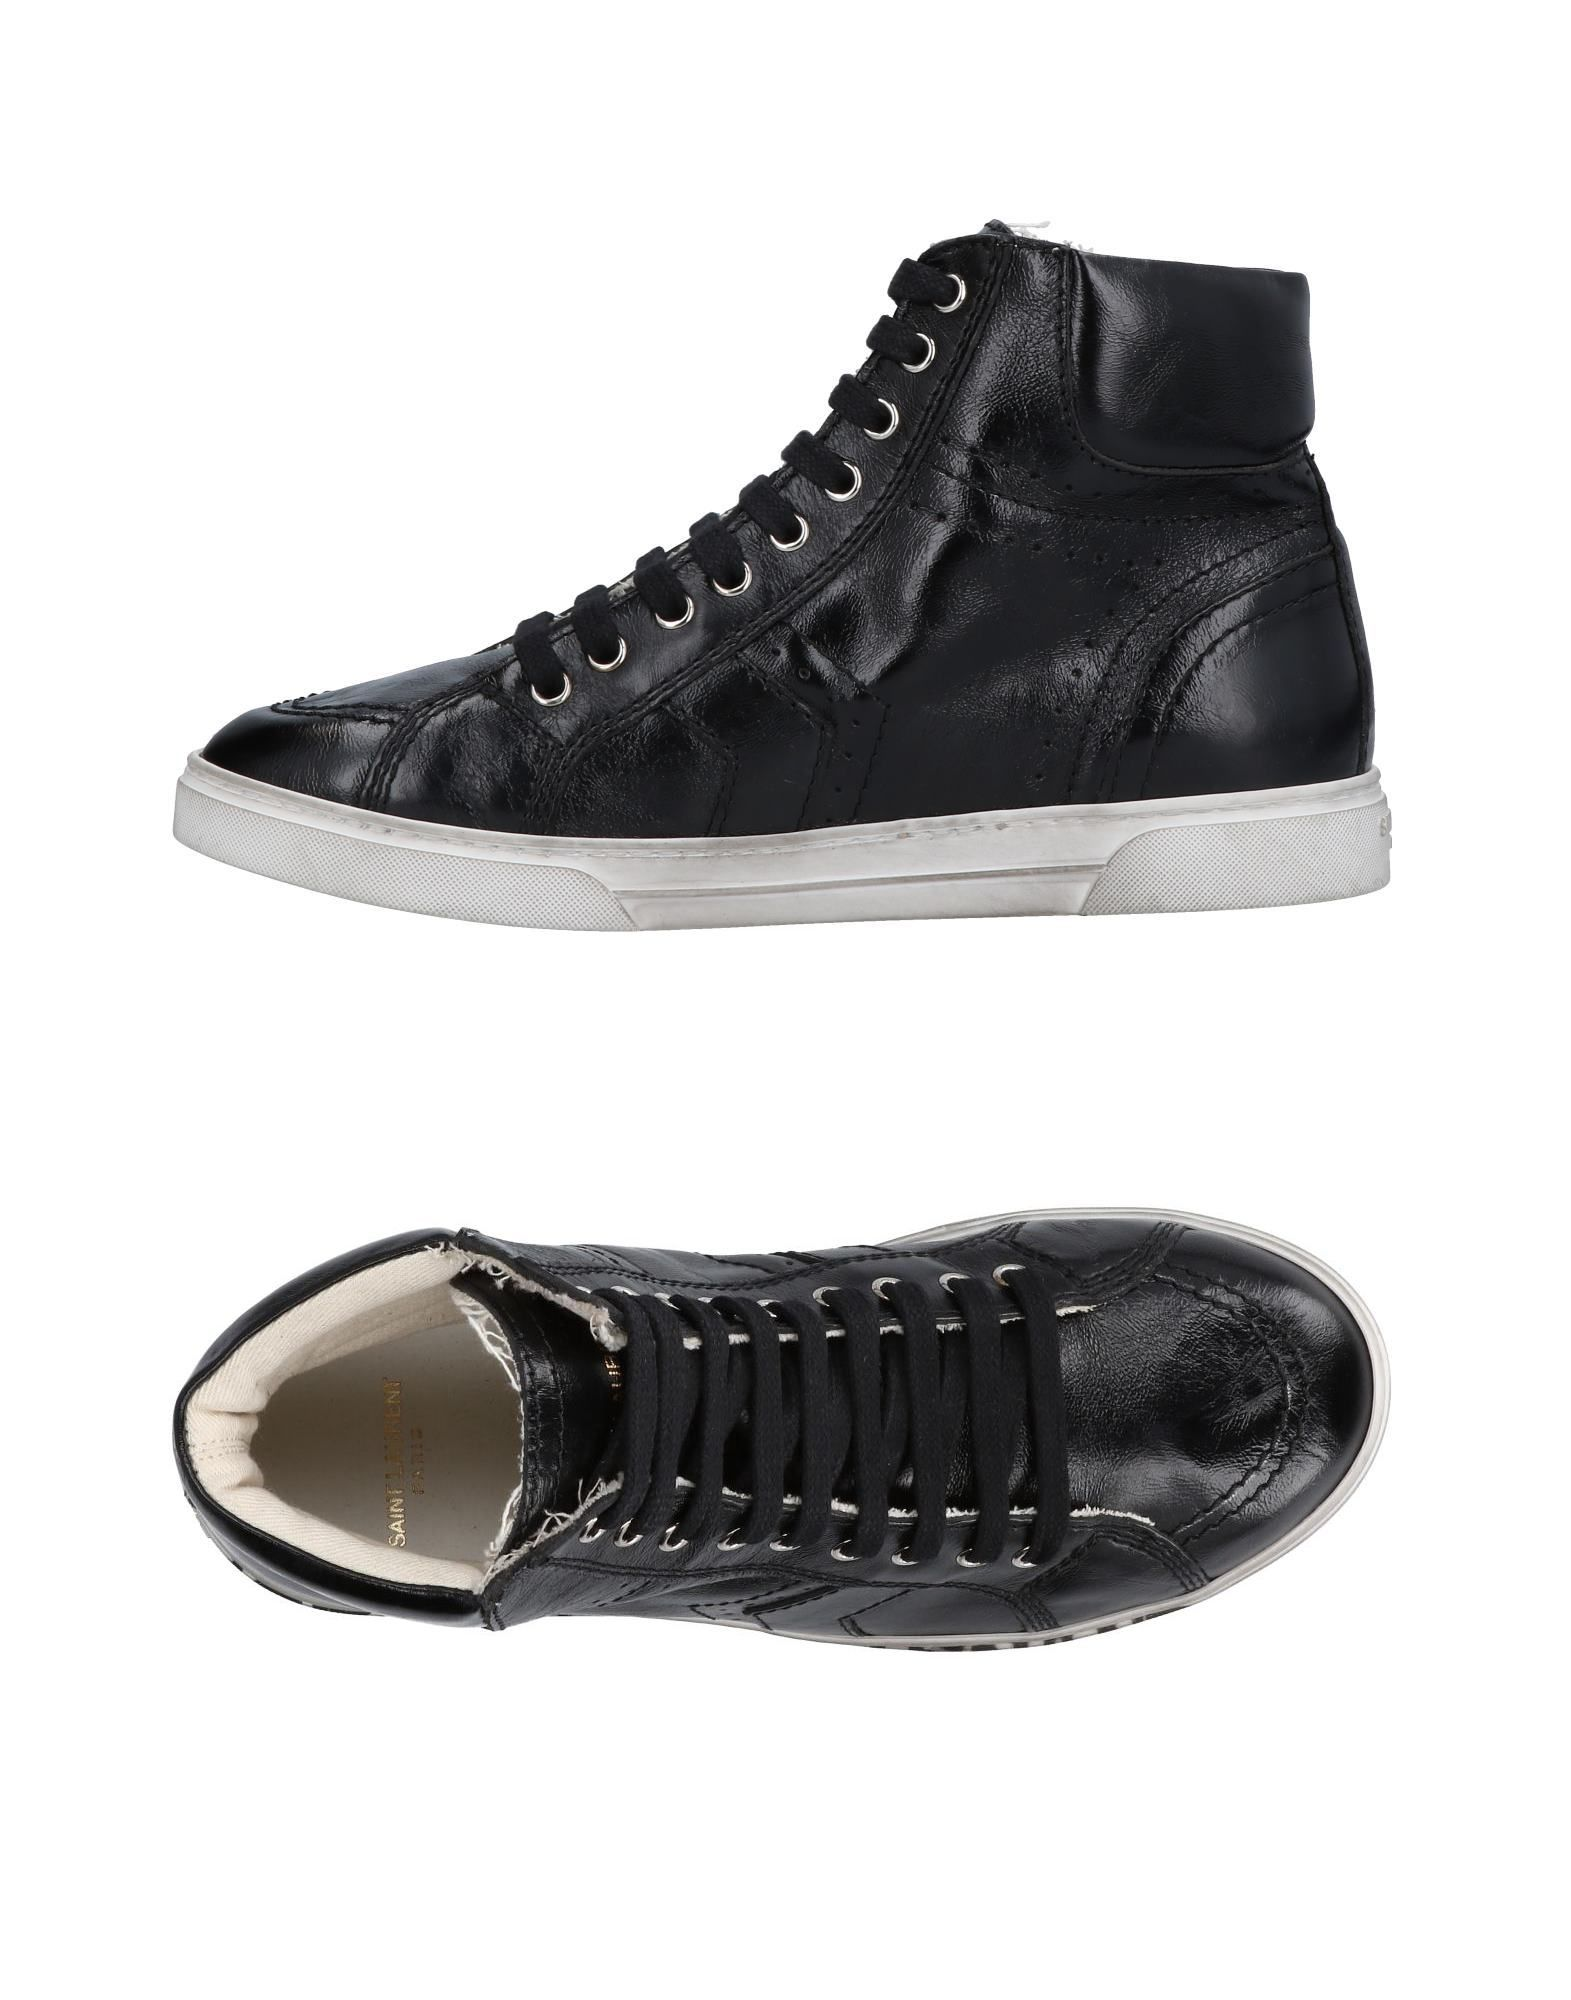 Saint Laurent  Sneakers Herren  Laurent 11462170LA b6e994